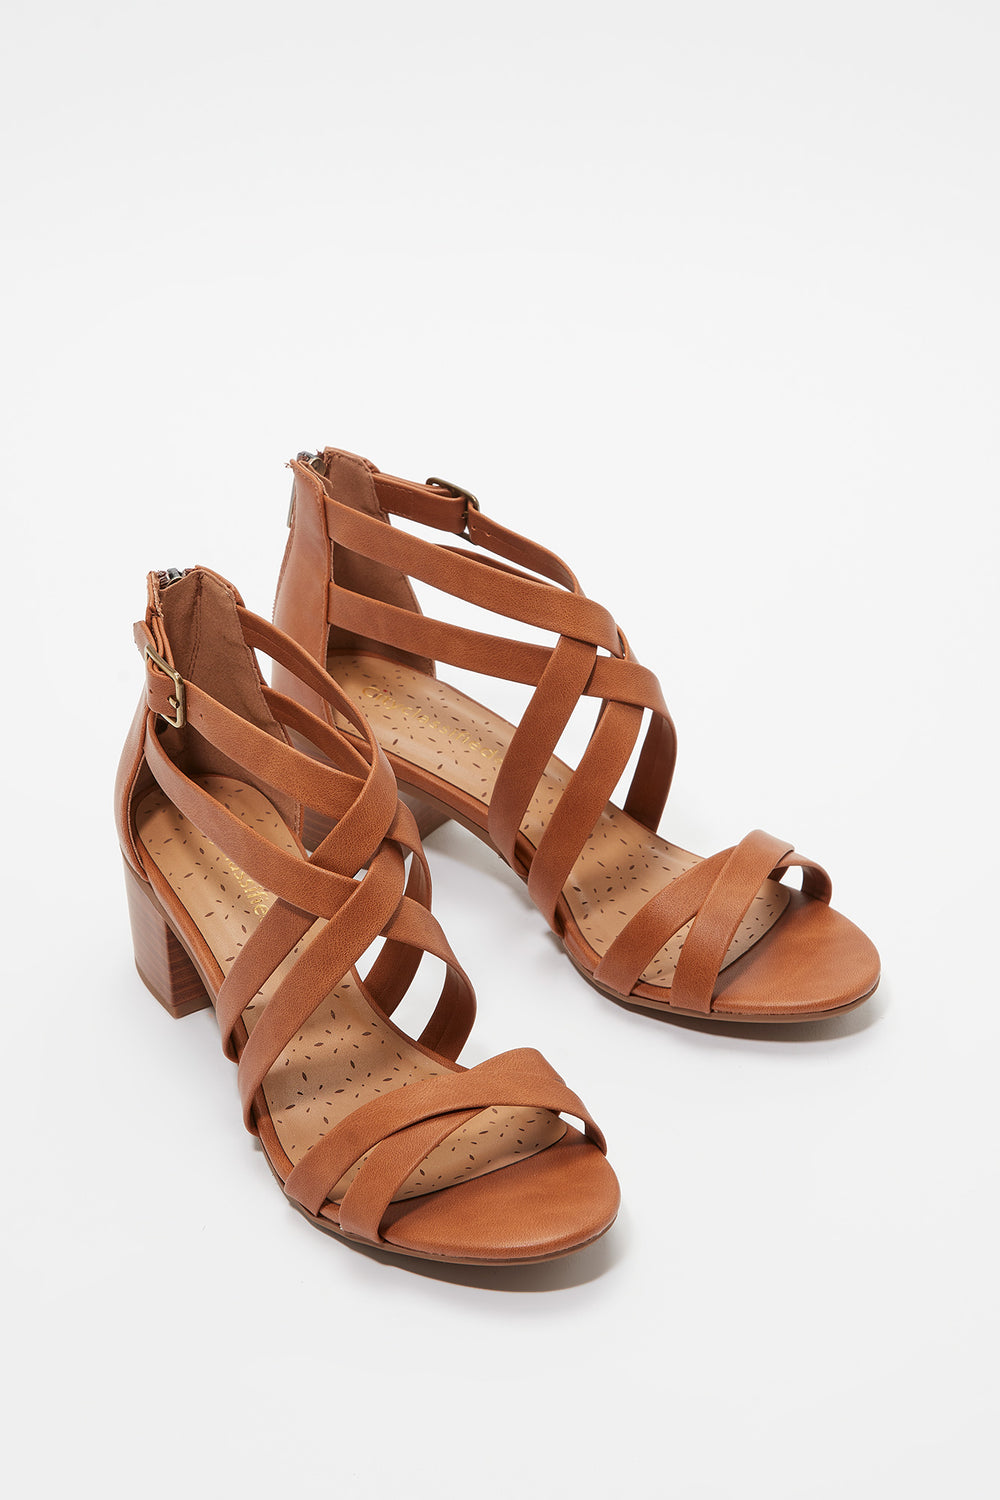 Criss Cross Open-Toe Block Heel Sandal Tan